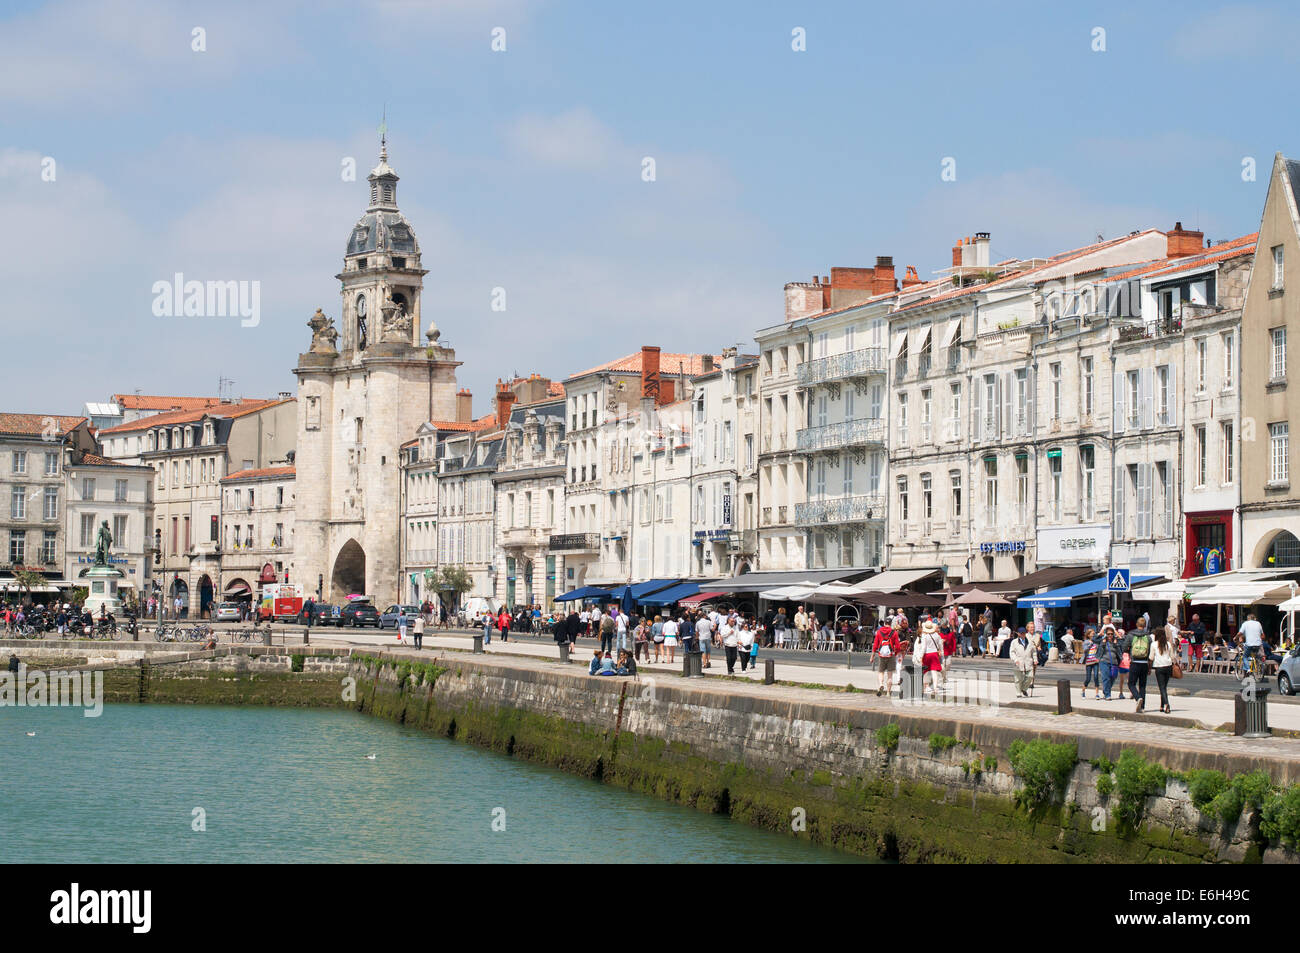 la rochelle harbour and old town charente maritime france europe stock photo 72905992 alamy. Black Bedroom Furniture Sets. Home Design Ideas